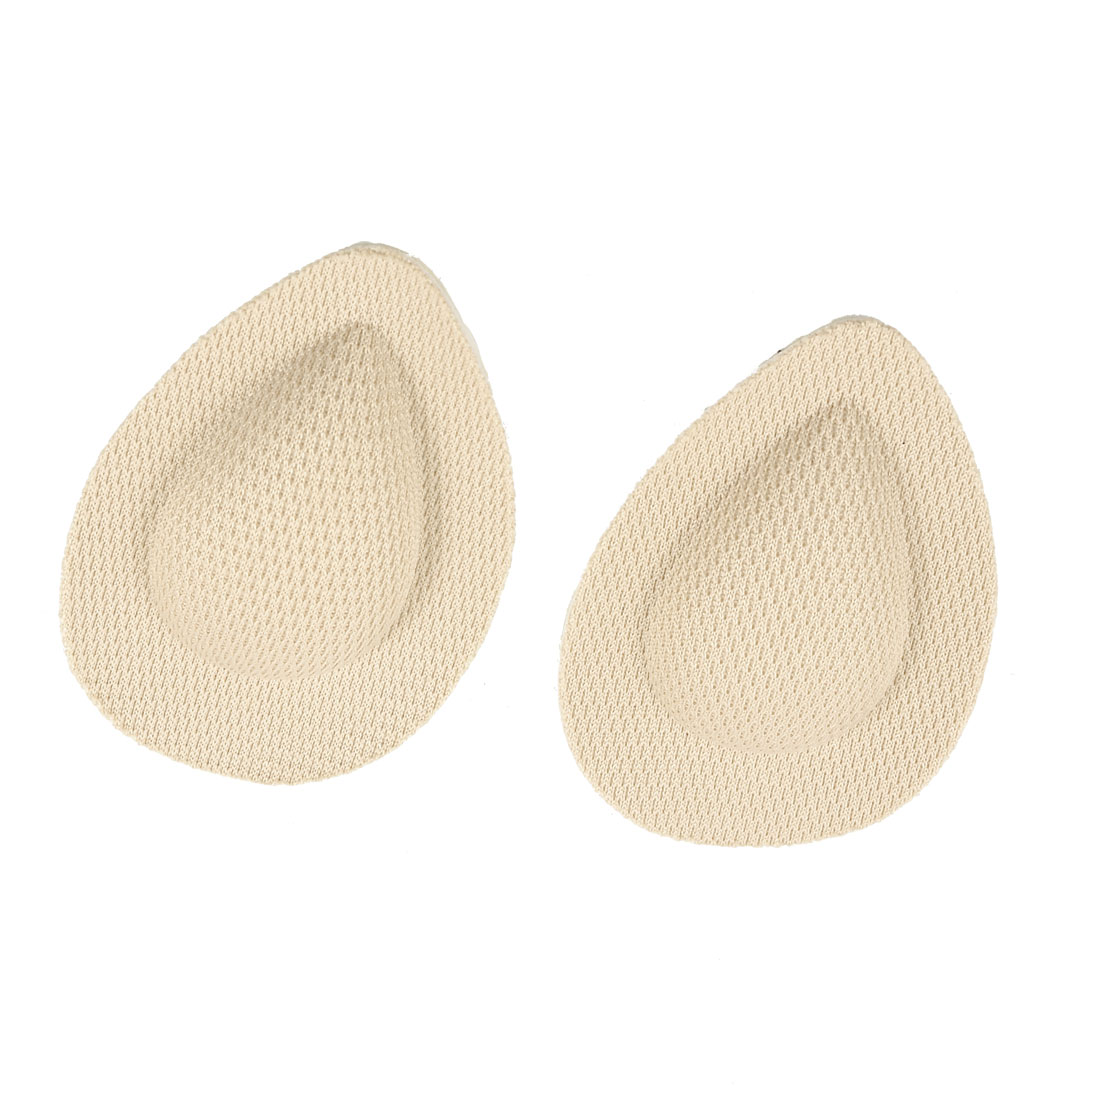 Pair Beige Fleece Disposable Adhesive Sole Pads for Lady